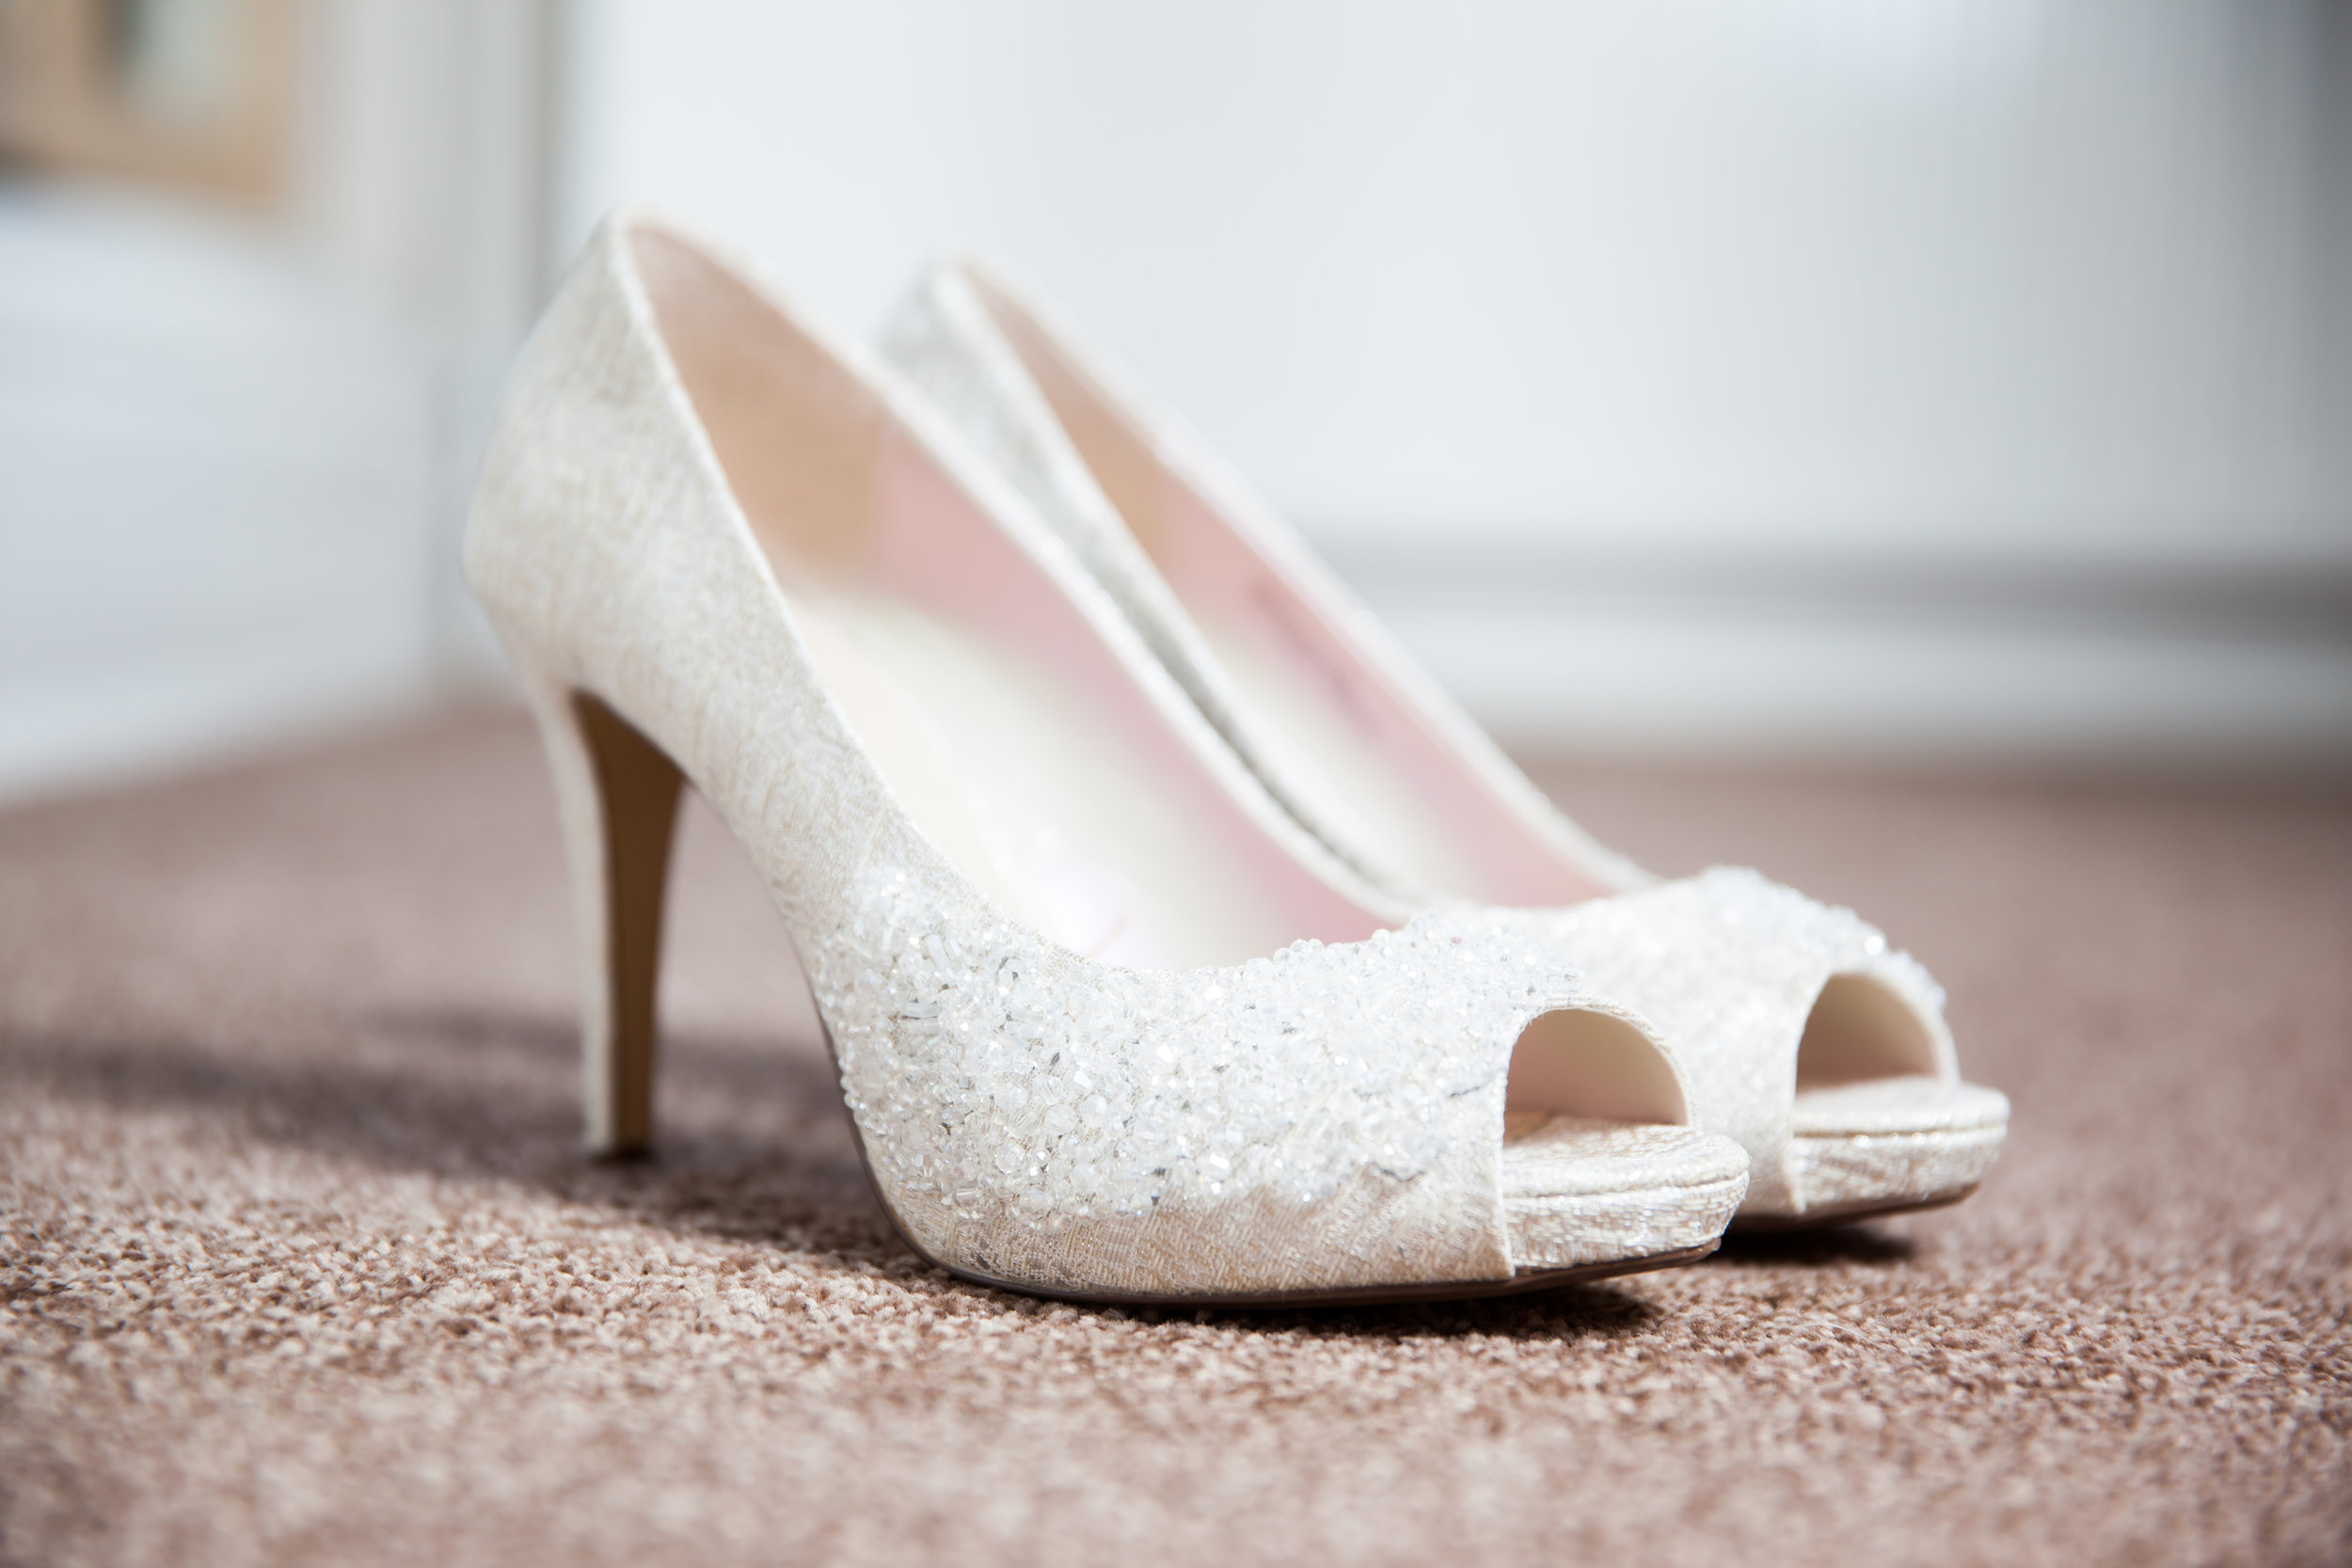 The bridal shoes: Will you wear white heels for your wedding day?